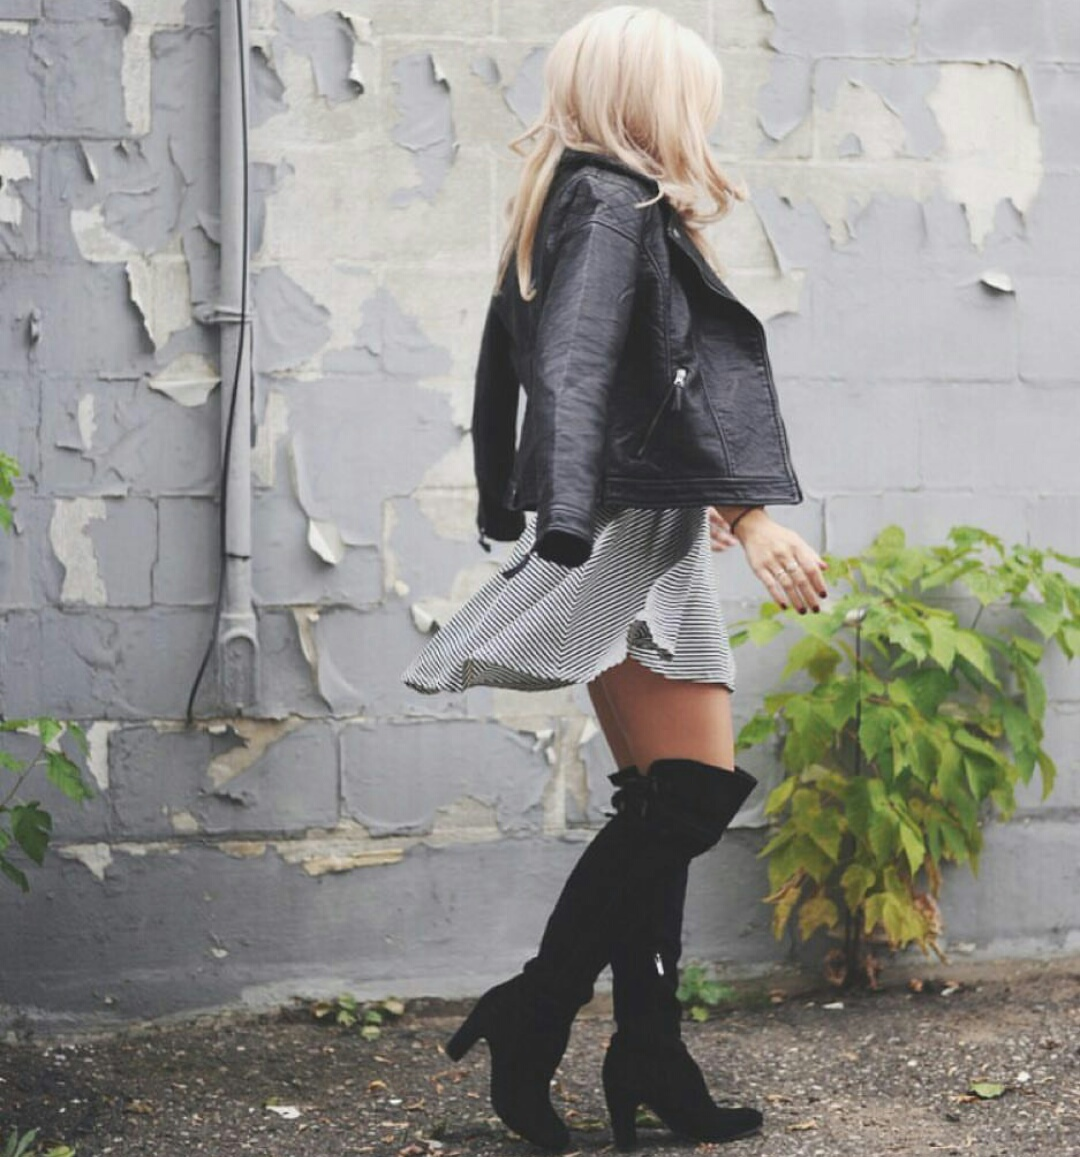 striped dress, straight blonde hair, and black leather jacket image